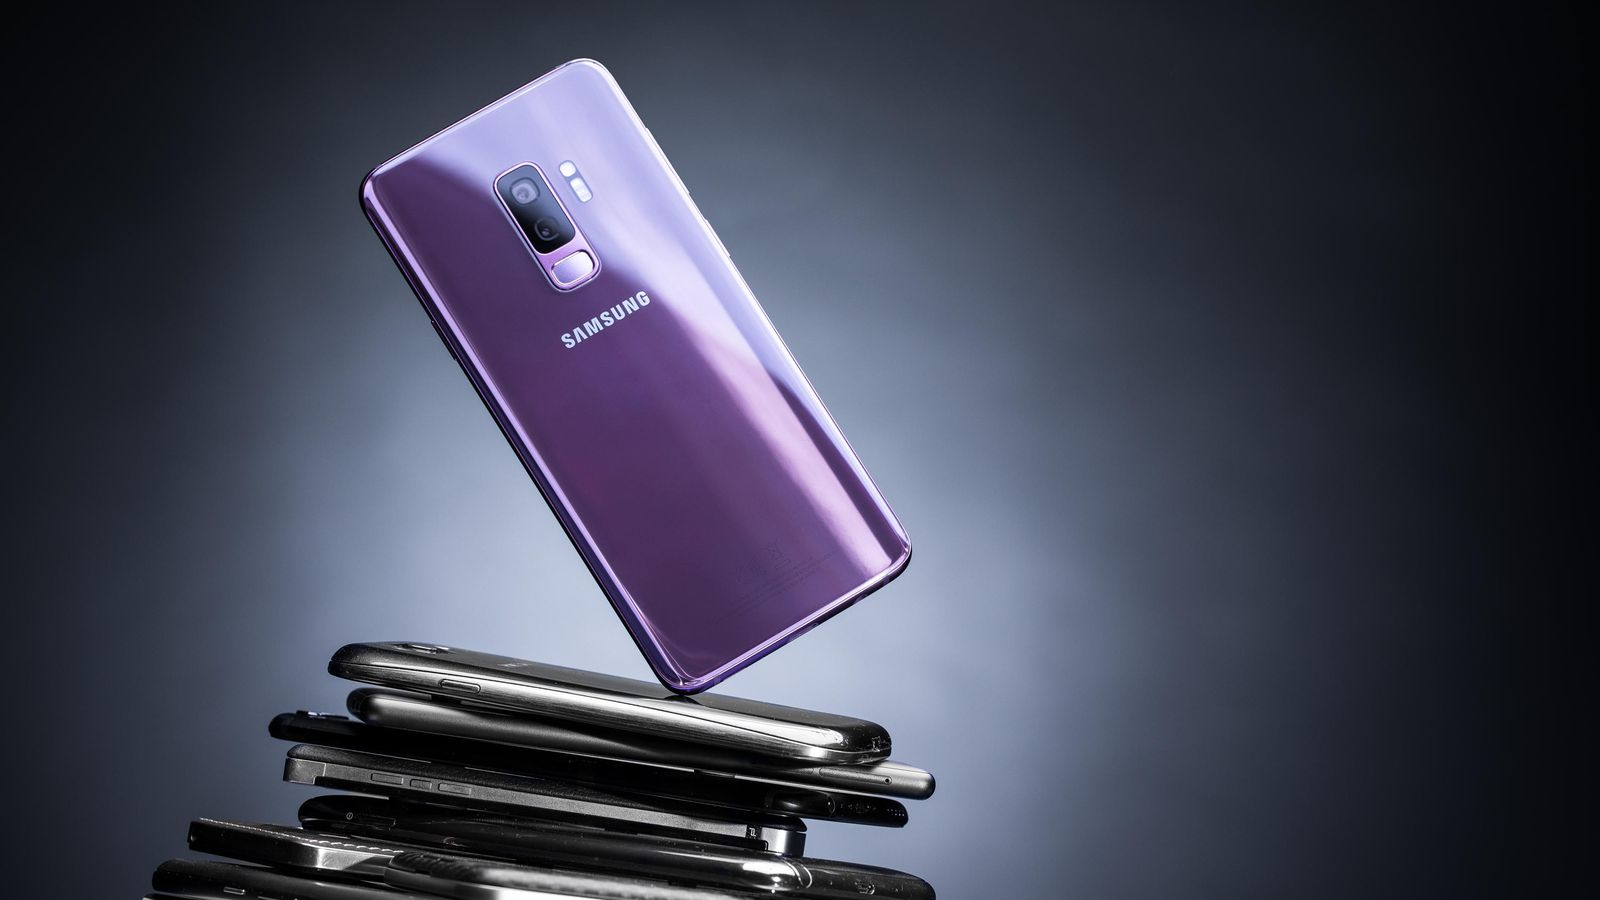 How to Boot into Samsung Galaxy S9 Recovery Mode